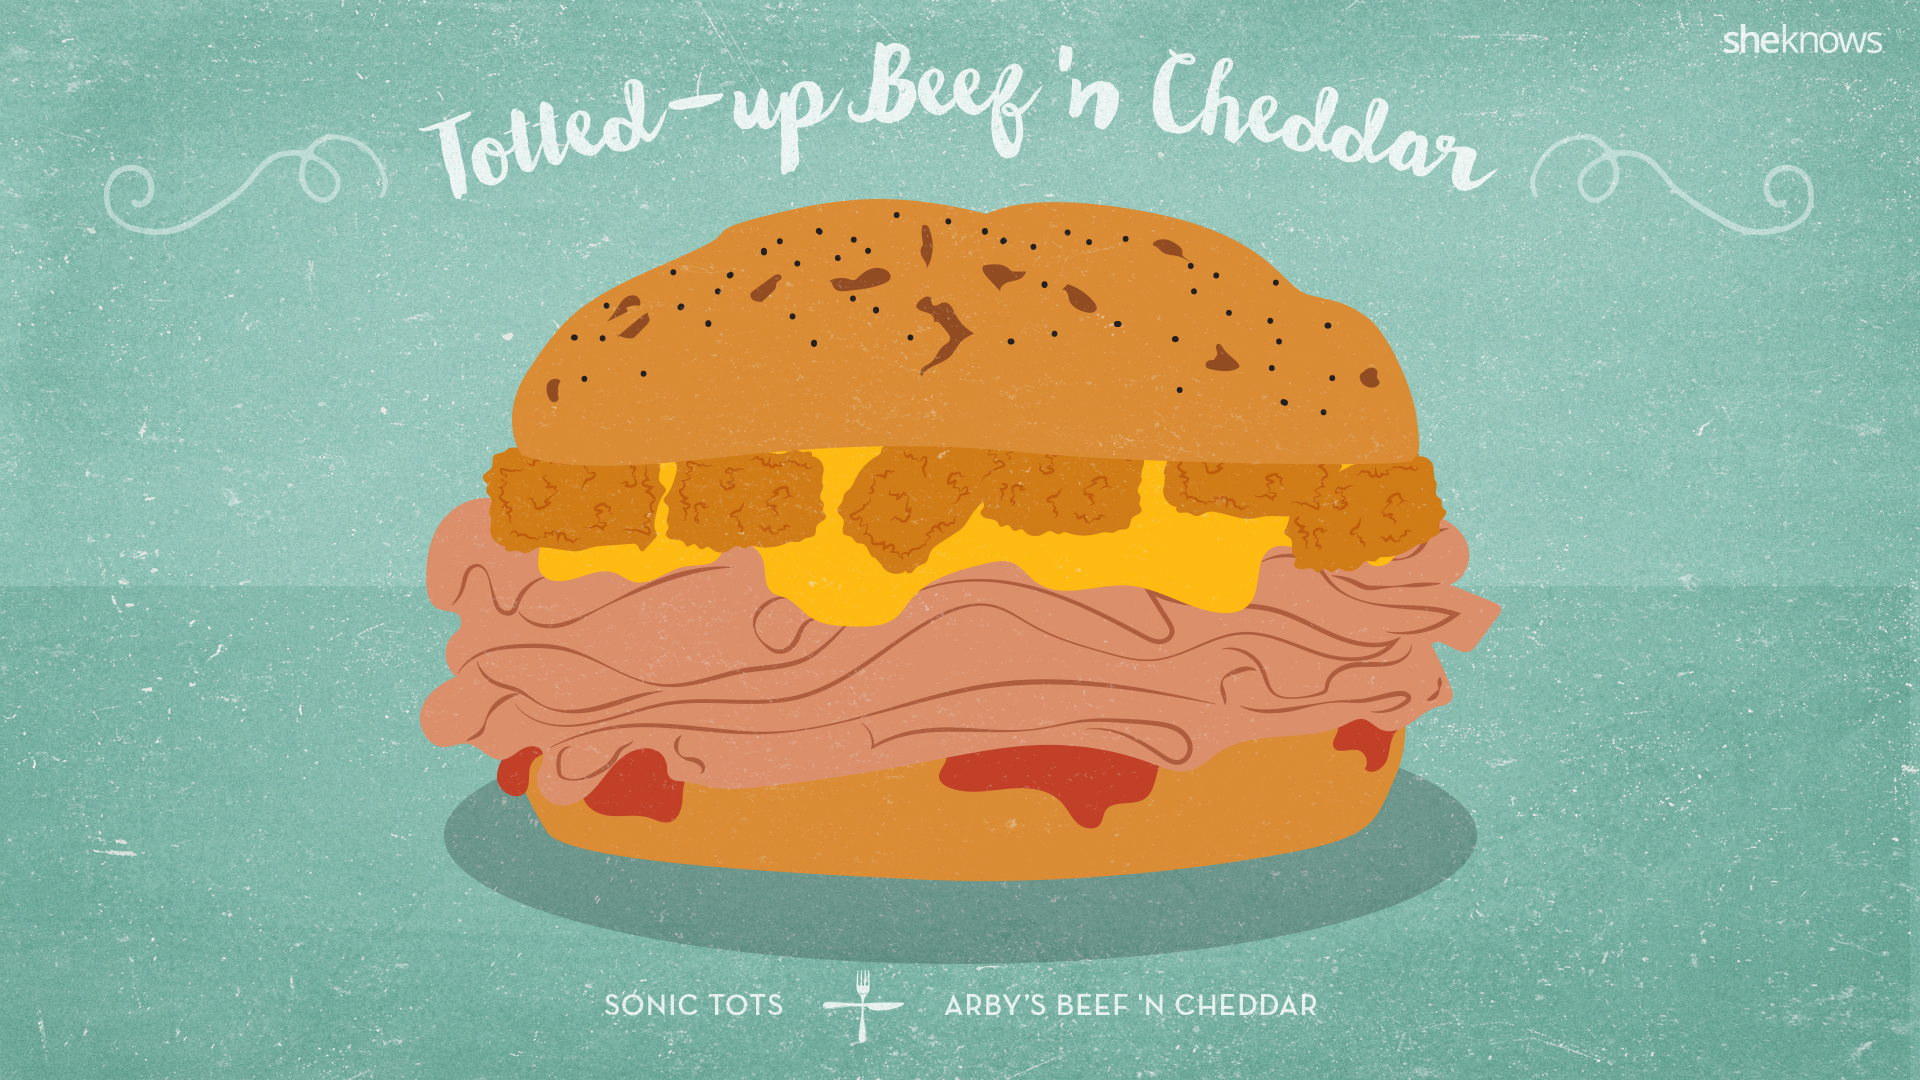 Totted-up Beef n Cheddar